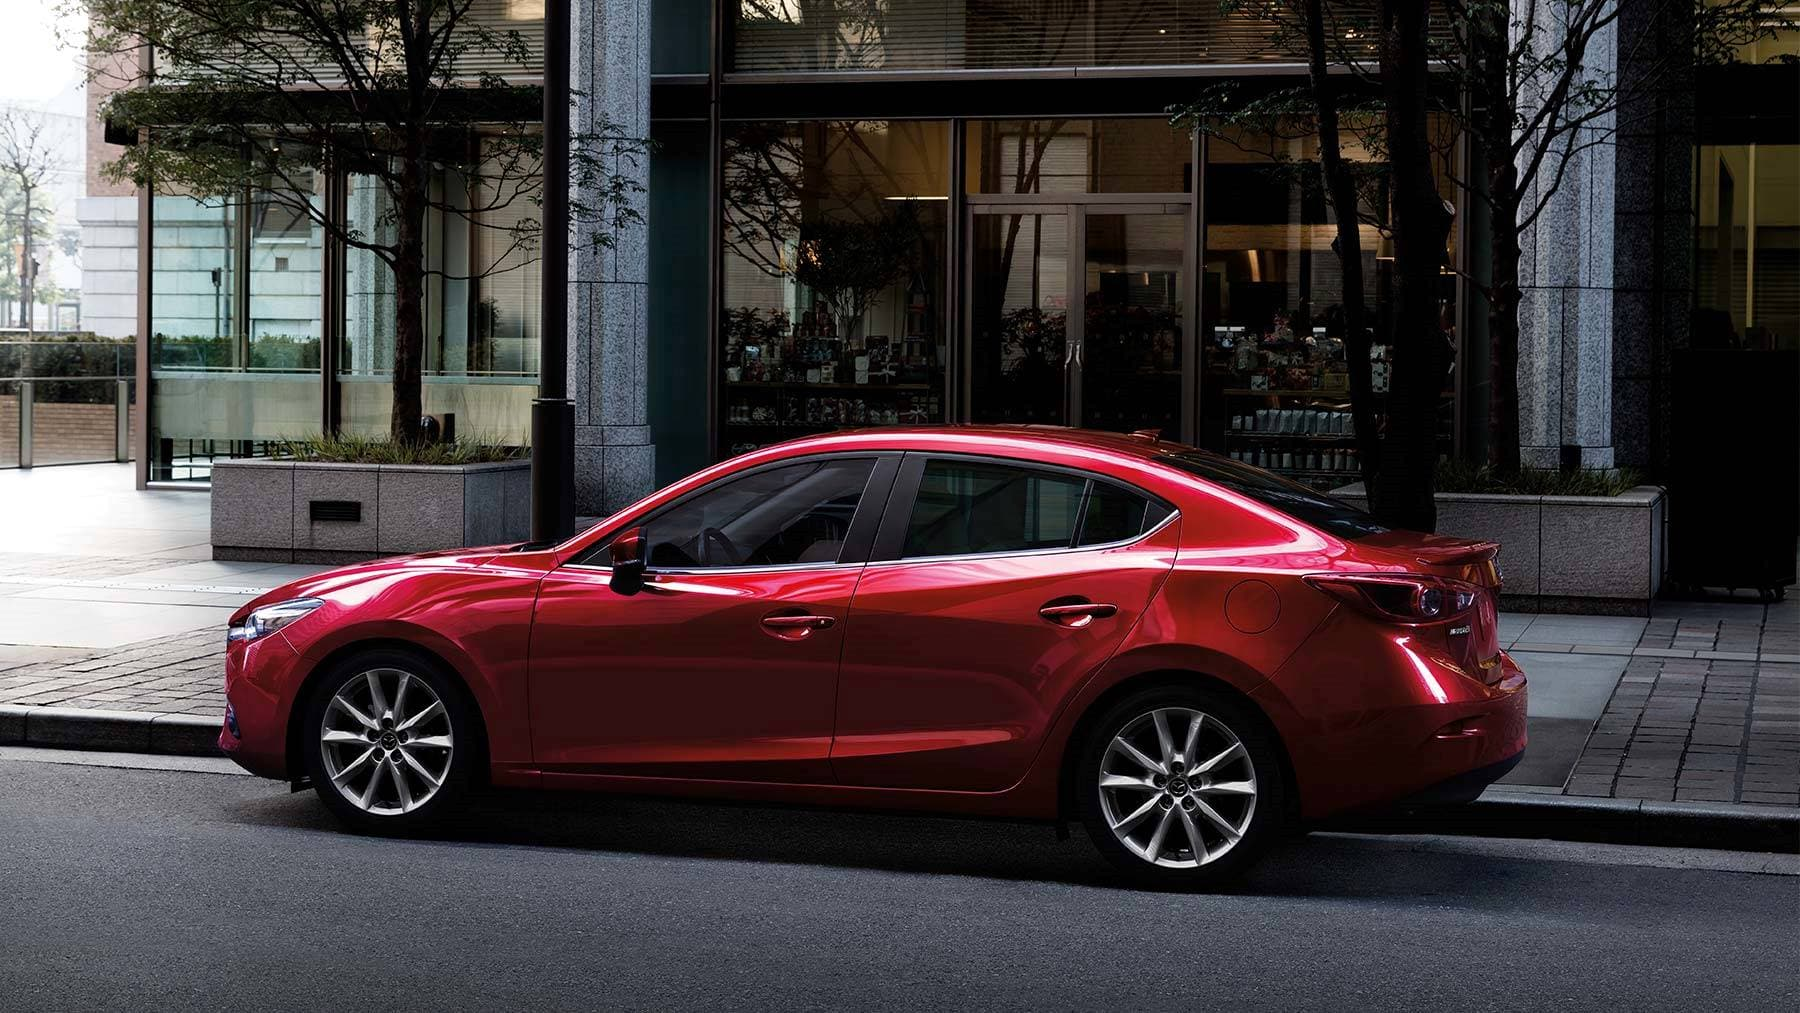 2018 Mazda3 4-Door Sedans For Sale In Columbia, Missouri Near Fulton